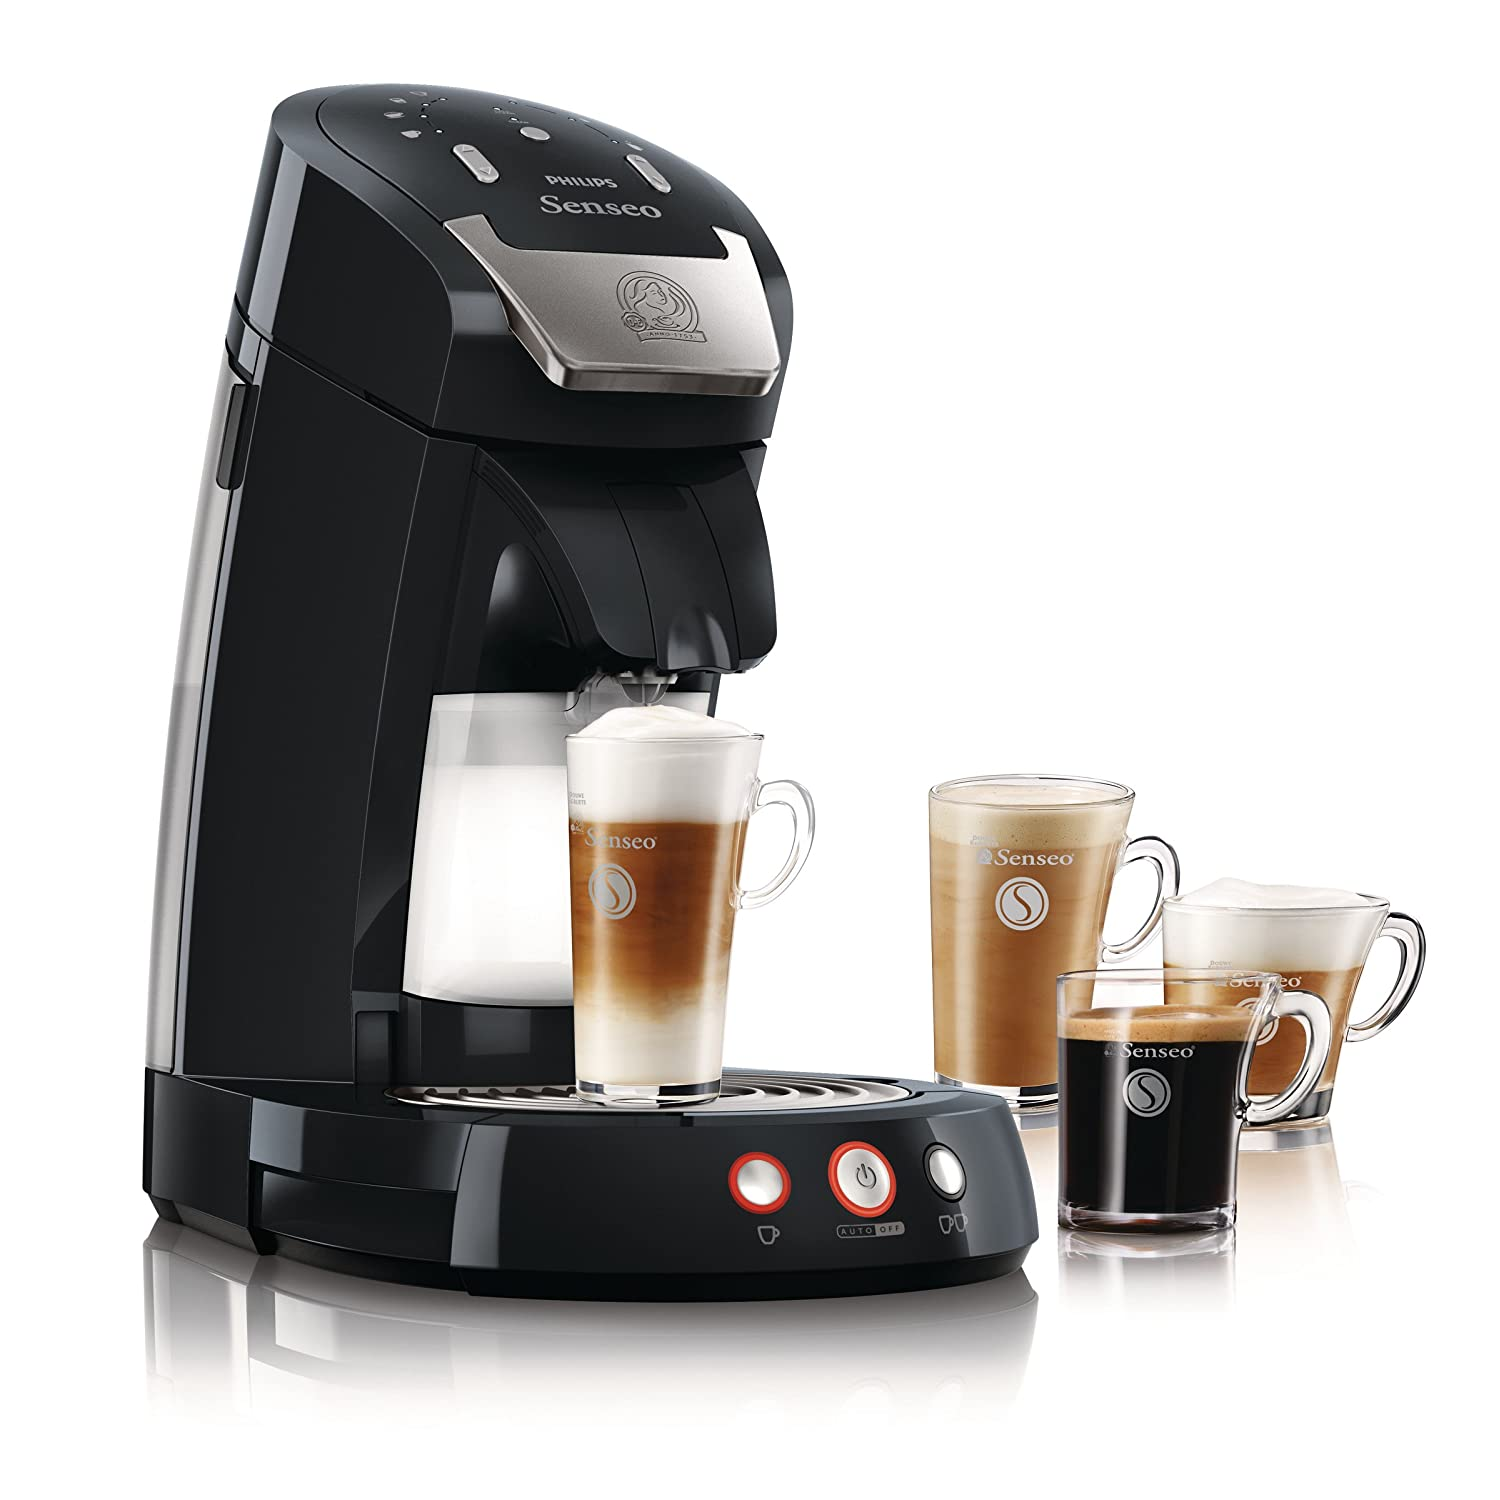 philips senseo viva caf hd7825 60 coffee machine with pod system black amazon hotukdeals. Black Bedroom Furniture Sets. Home Design Ideas